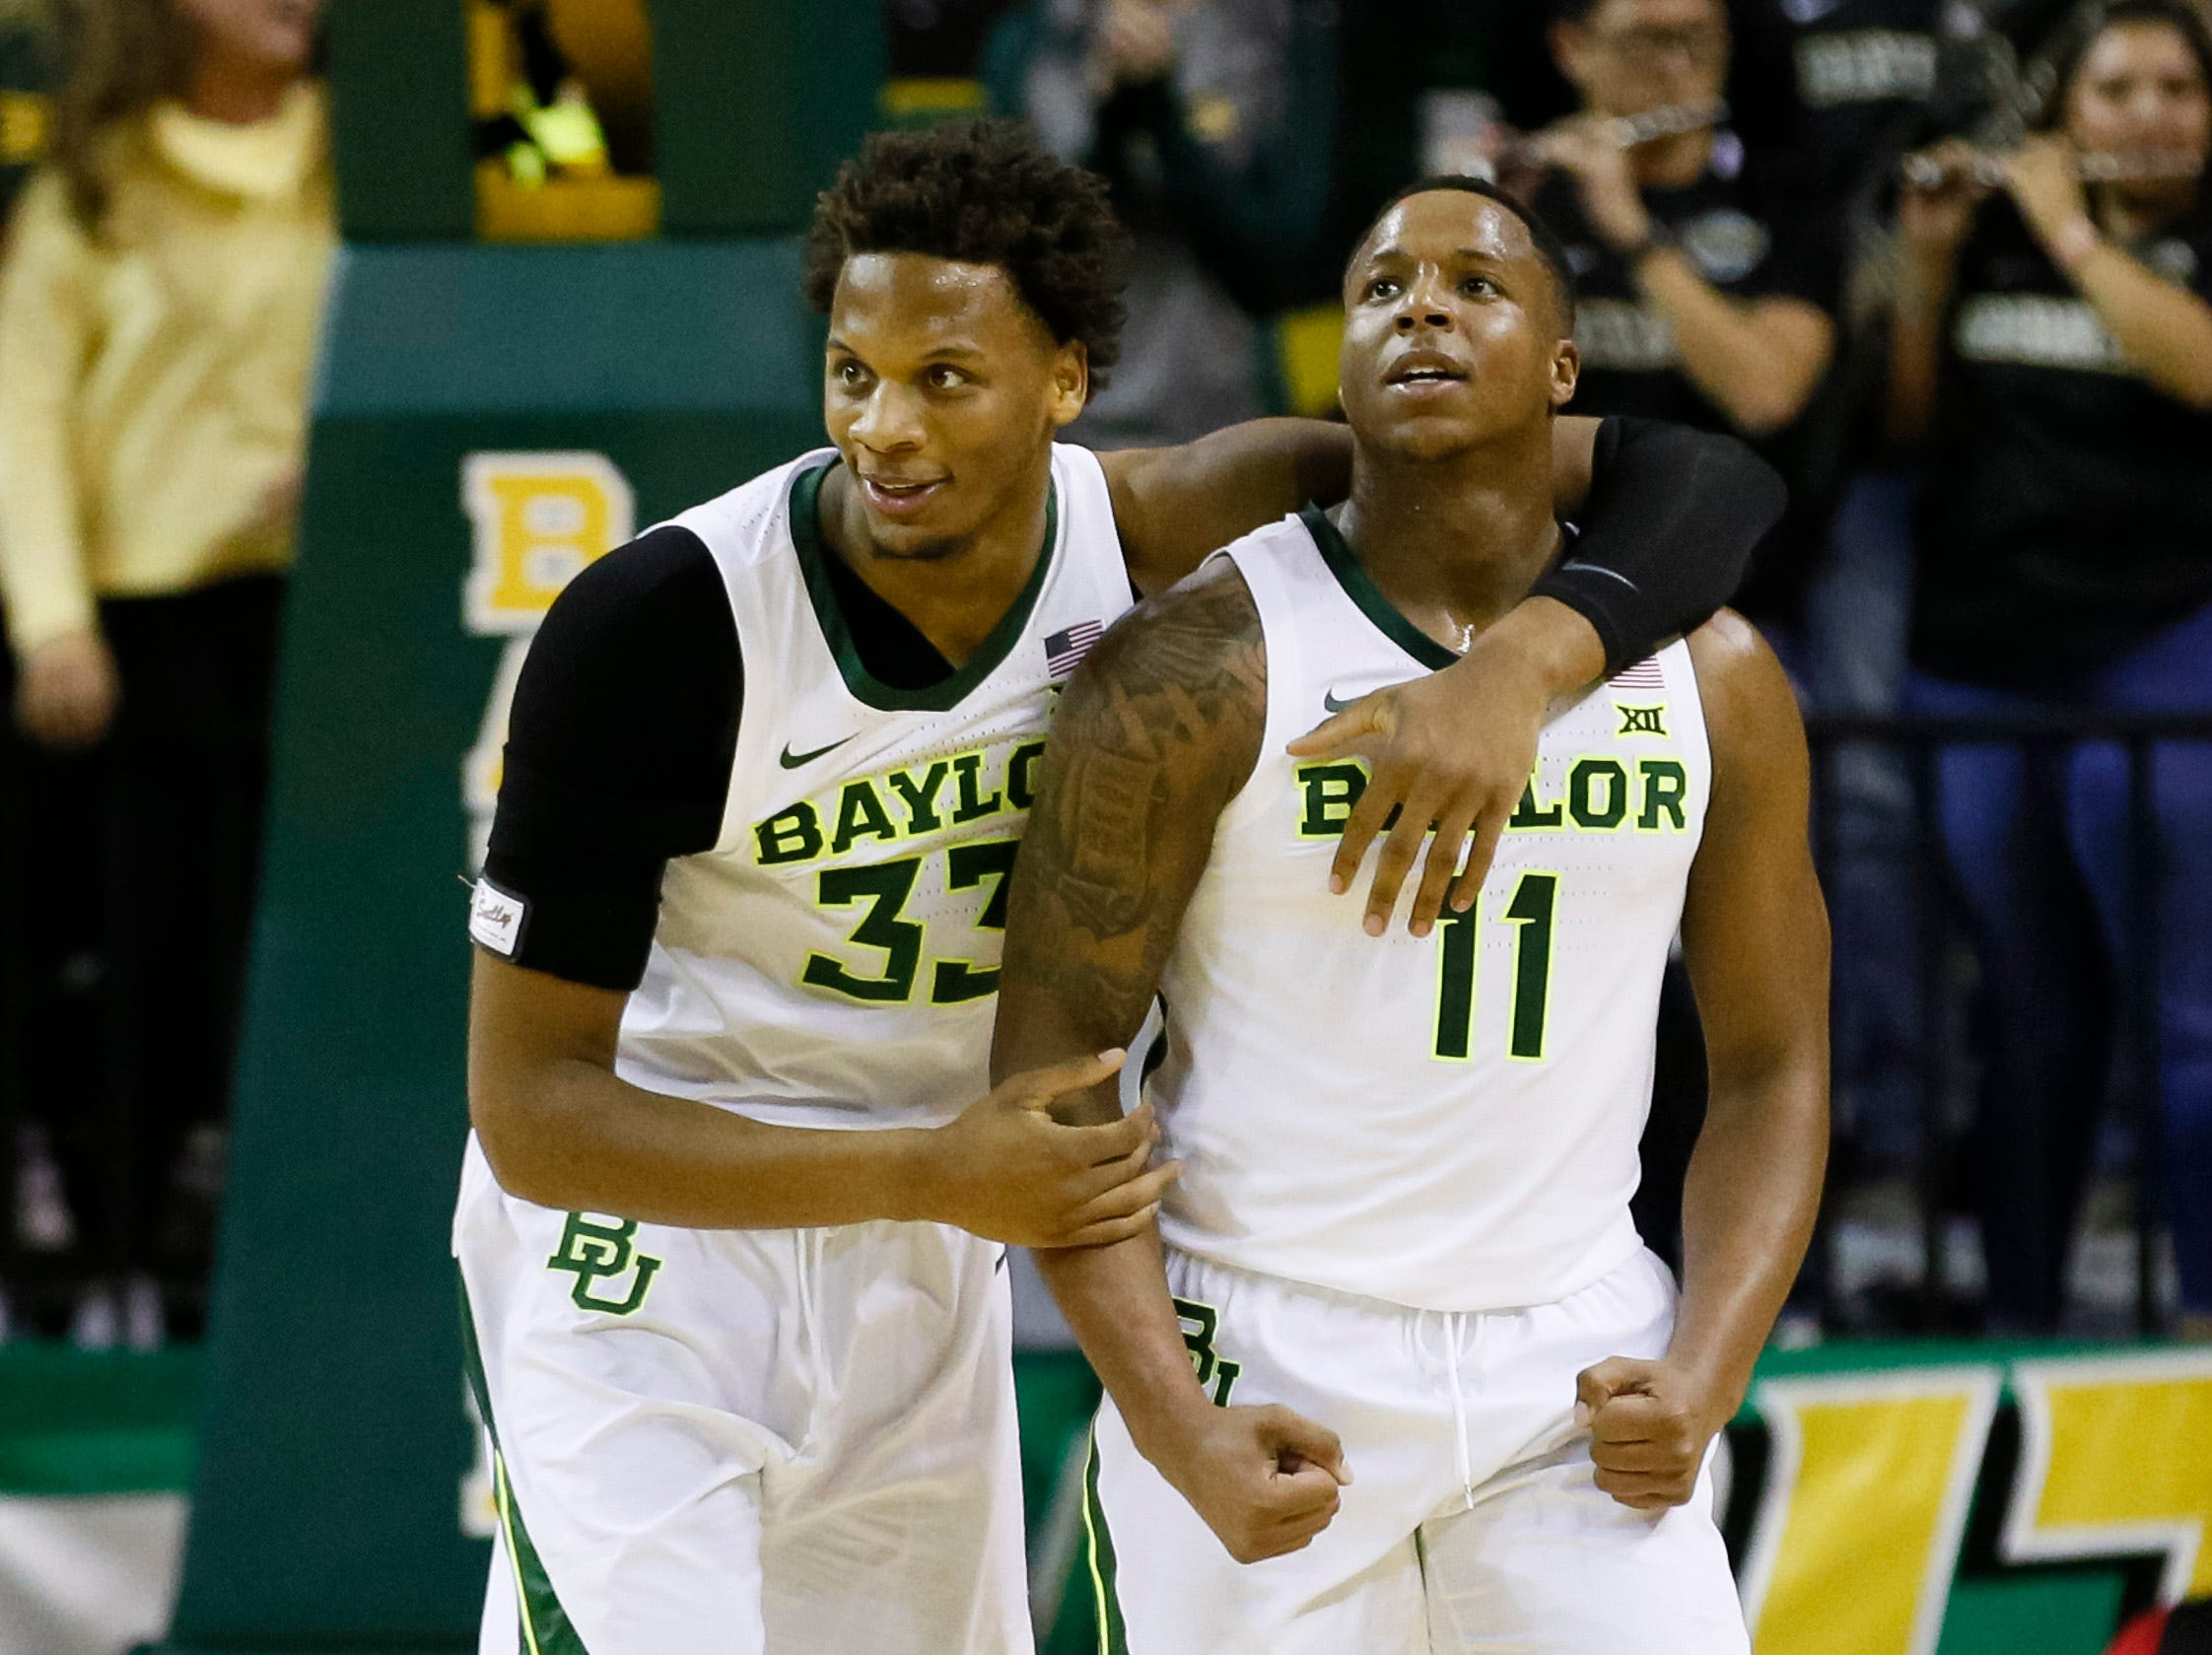 Jan 26, 2019; Waco, TX, USA; Baylor Bears forward Freddie Gillespie (33) hugs guard Mark Vital (11) after Alabama Crimson Tide called a timeout during the second half at Ferrell Center. Mandatory Credit: Ray Carlin-USA TODAY Sports